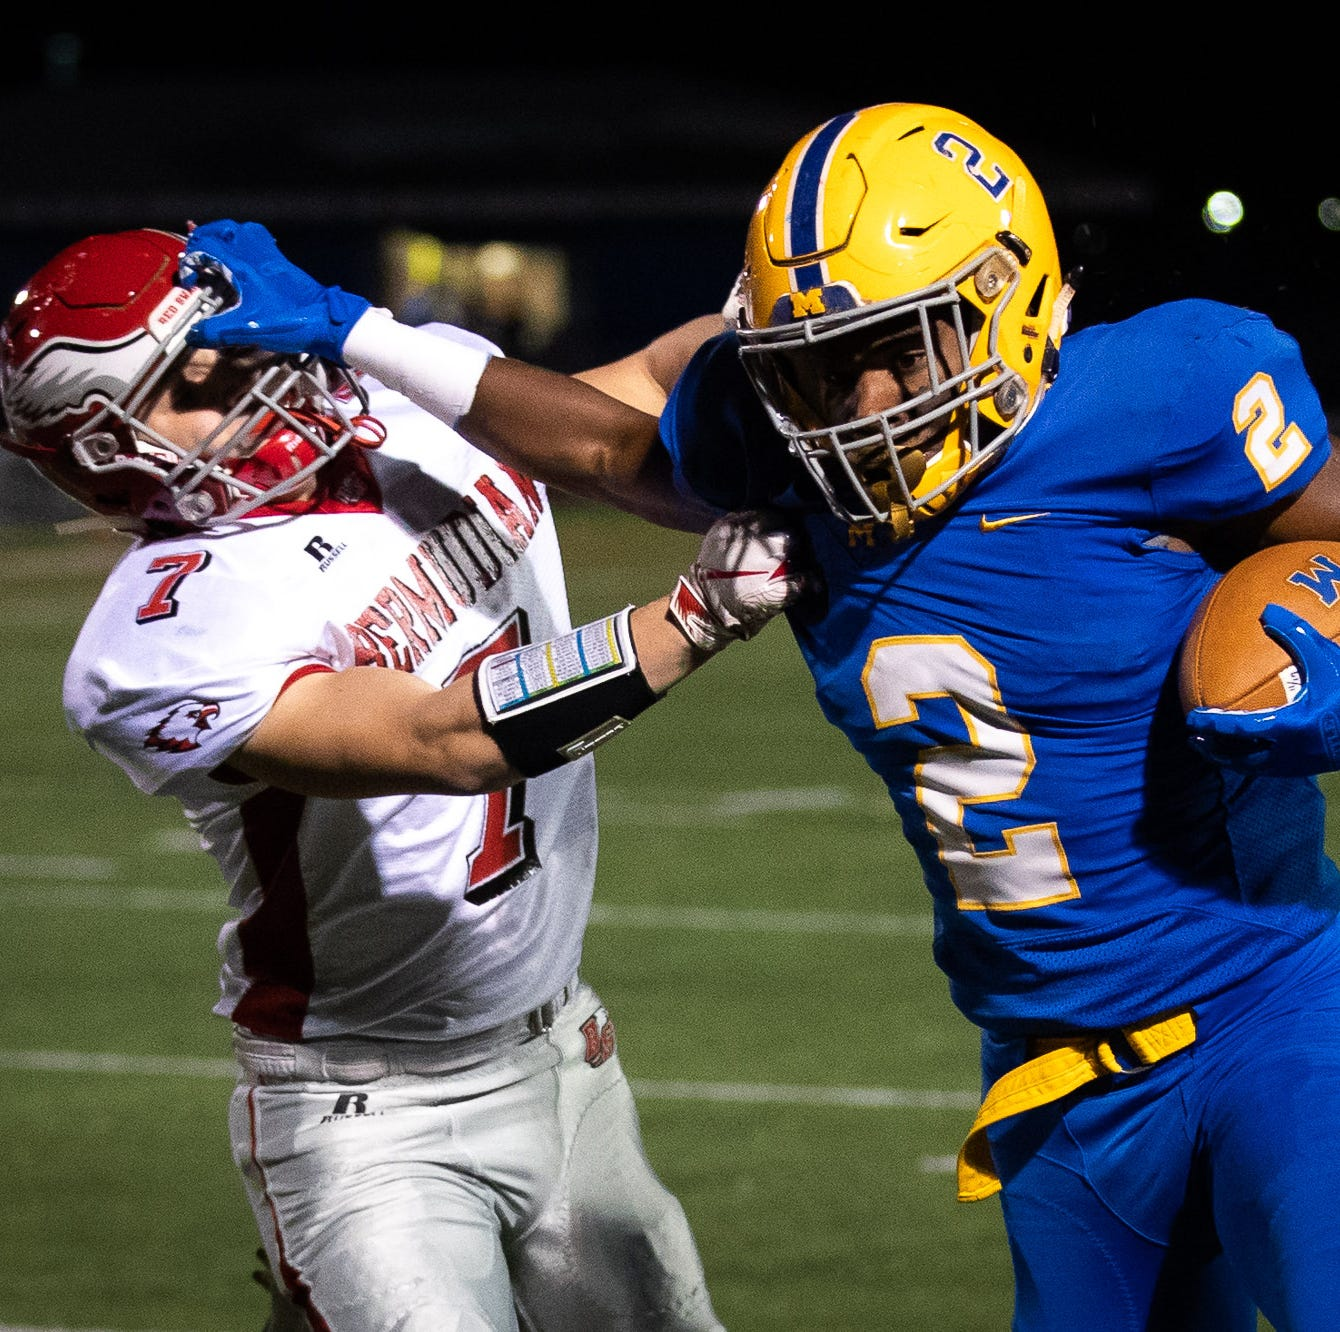 'Eventually we'll kick the door down': Bermudian's season ends with loss to Middletown